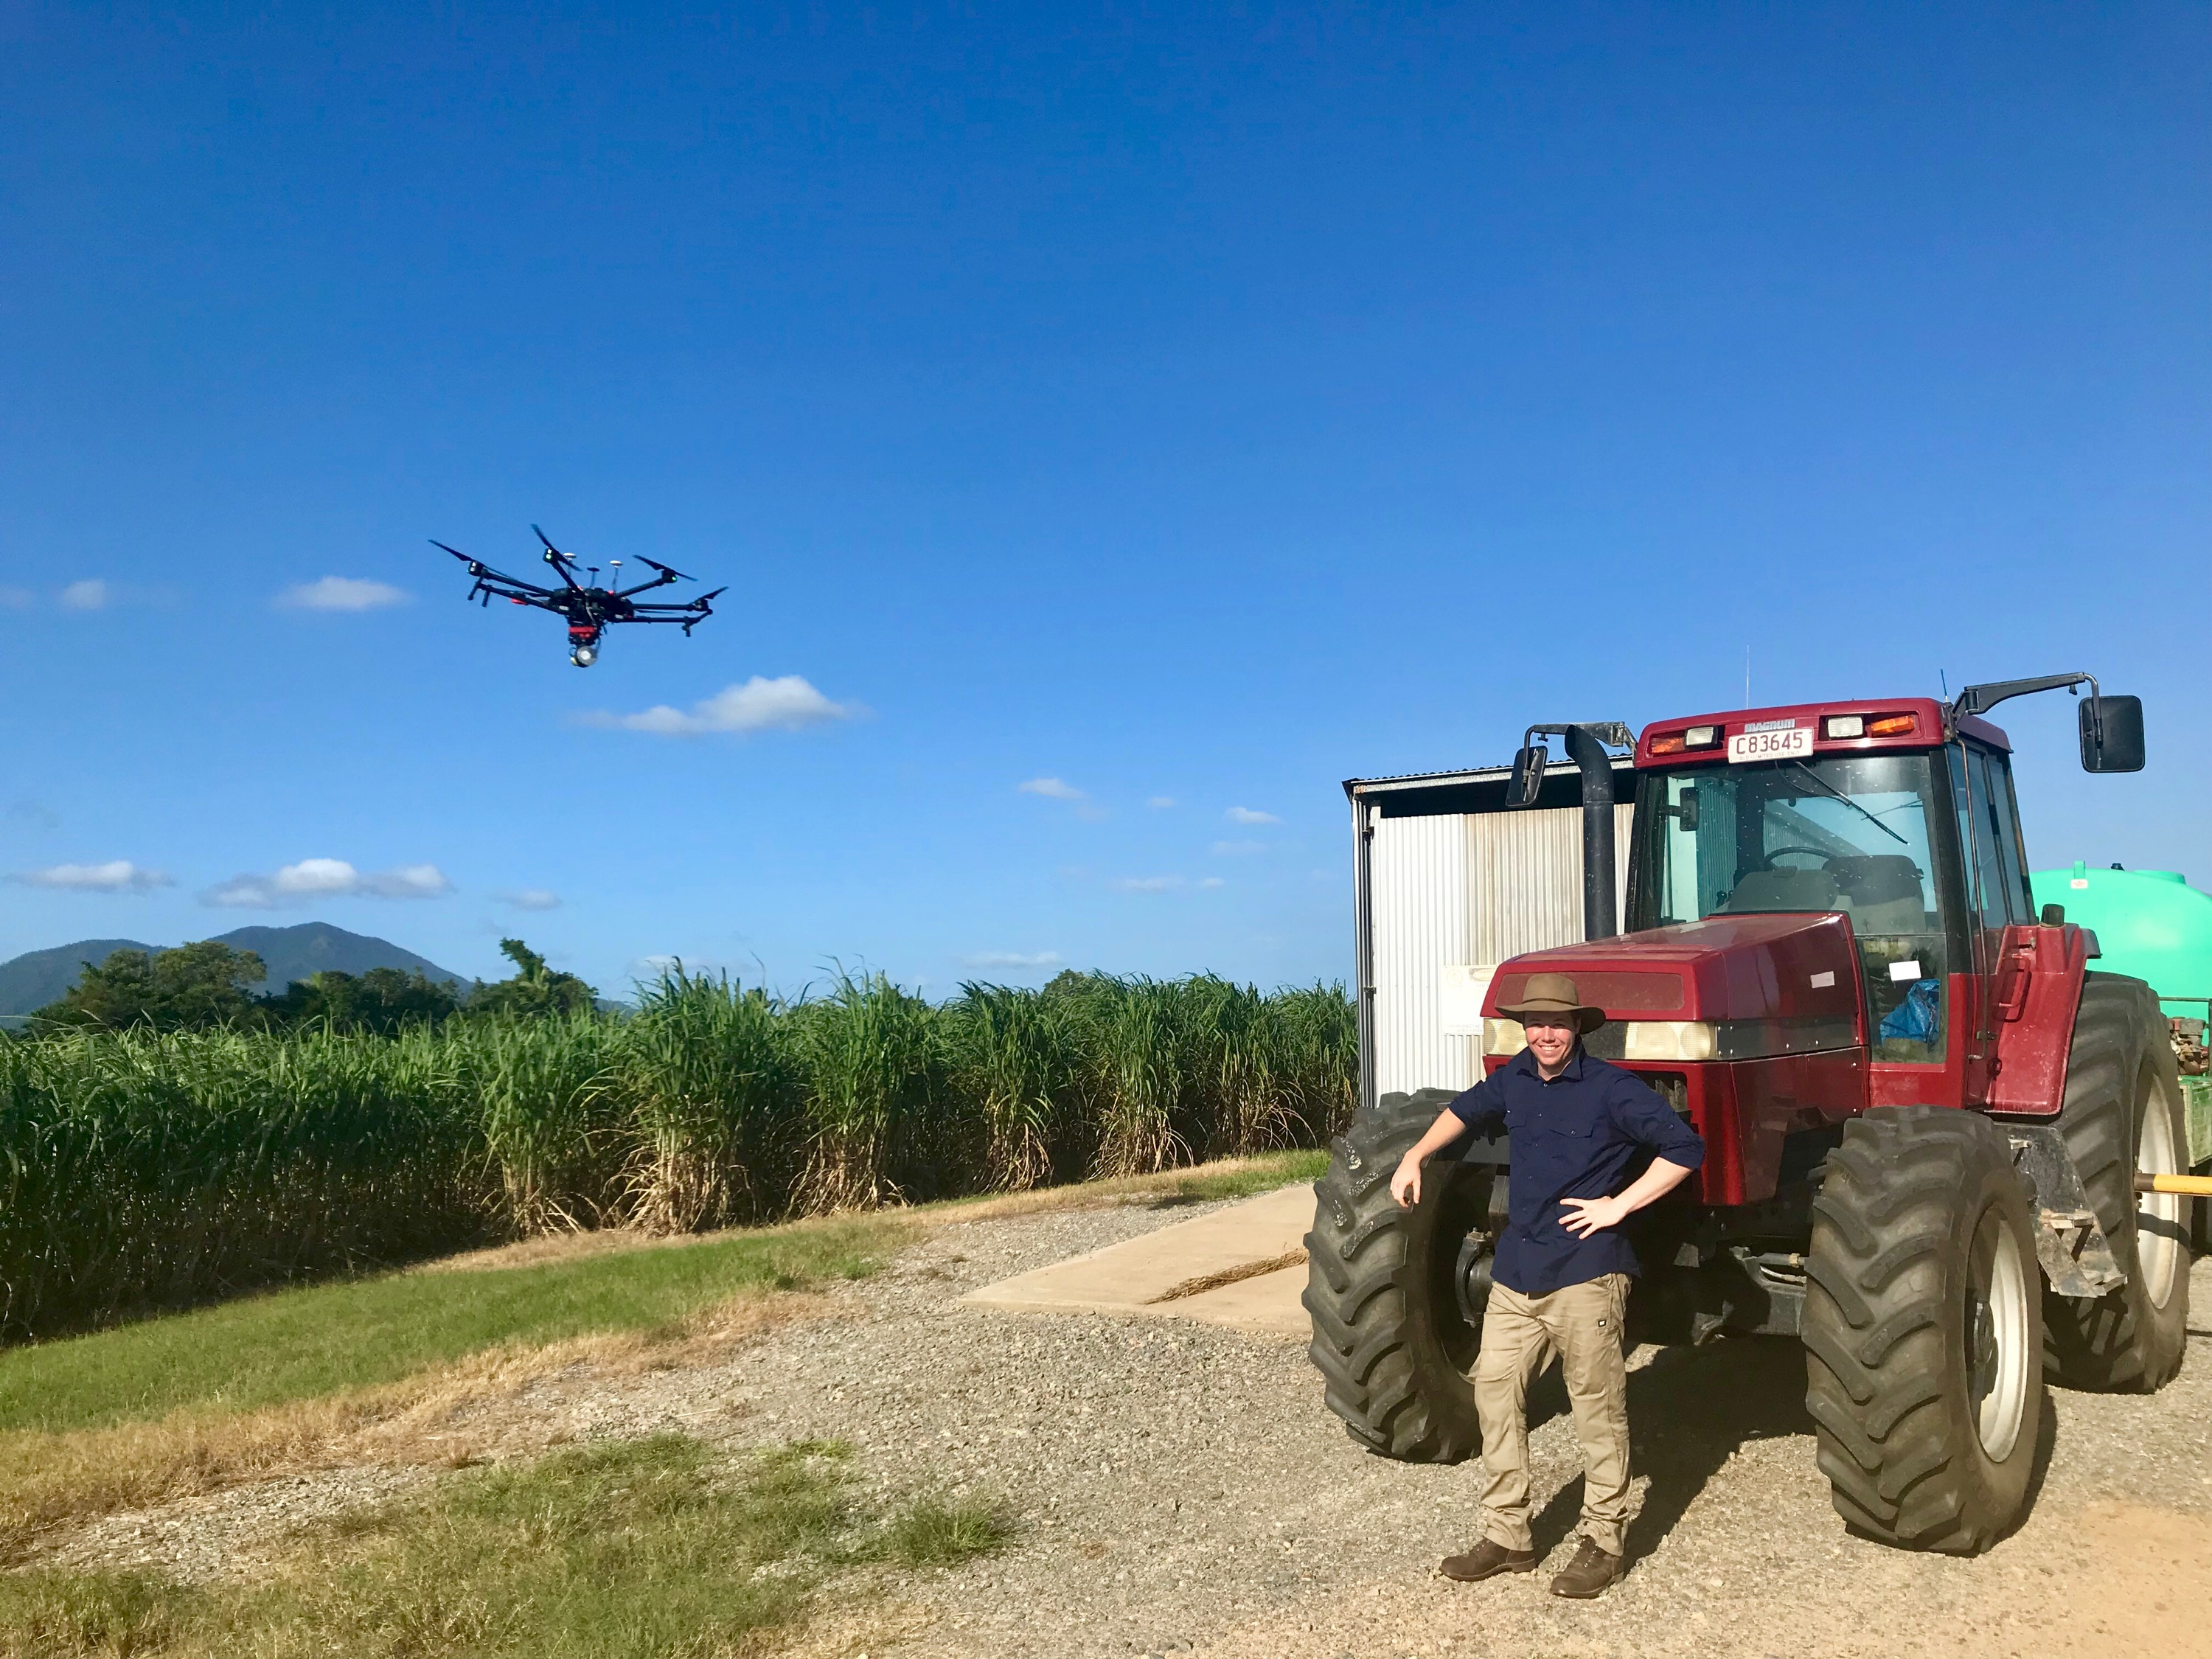 Man stands beside a tractor with a drone in the air